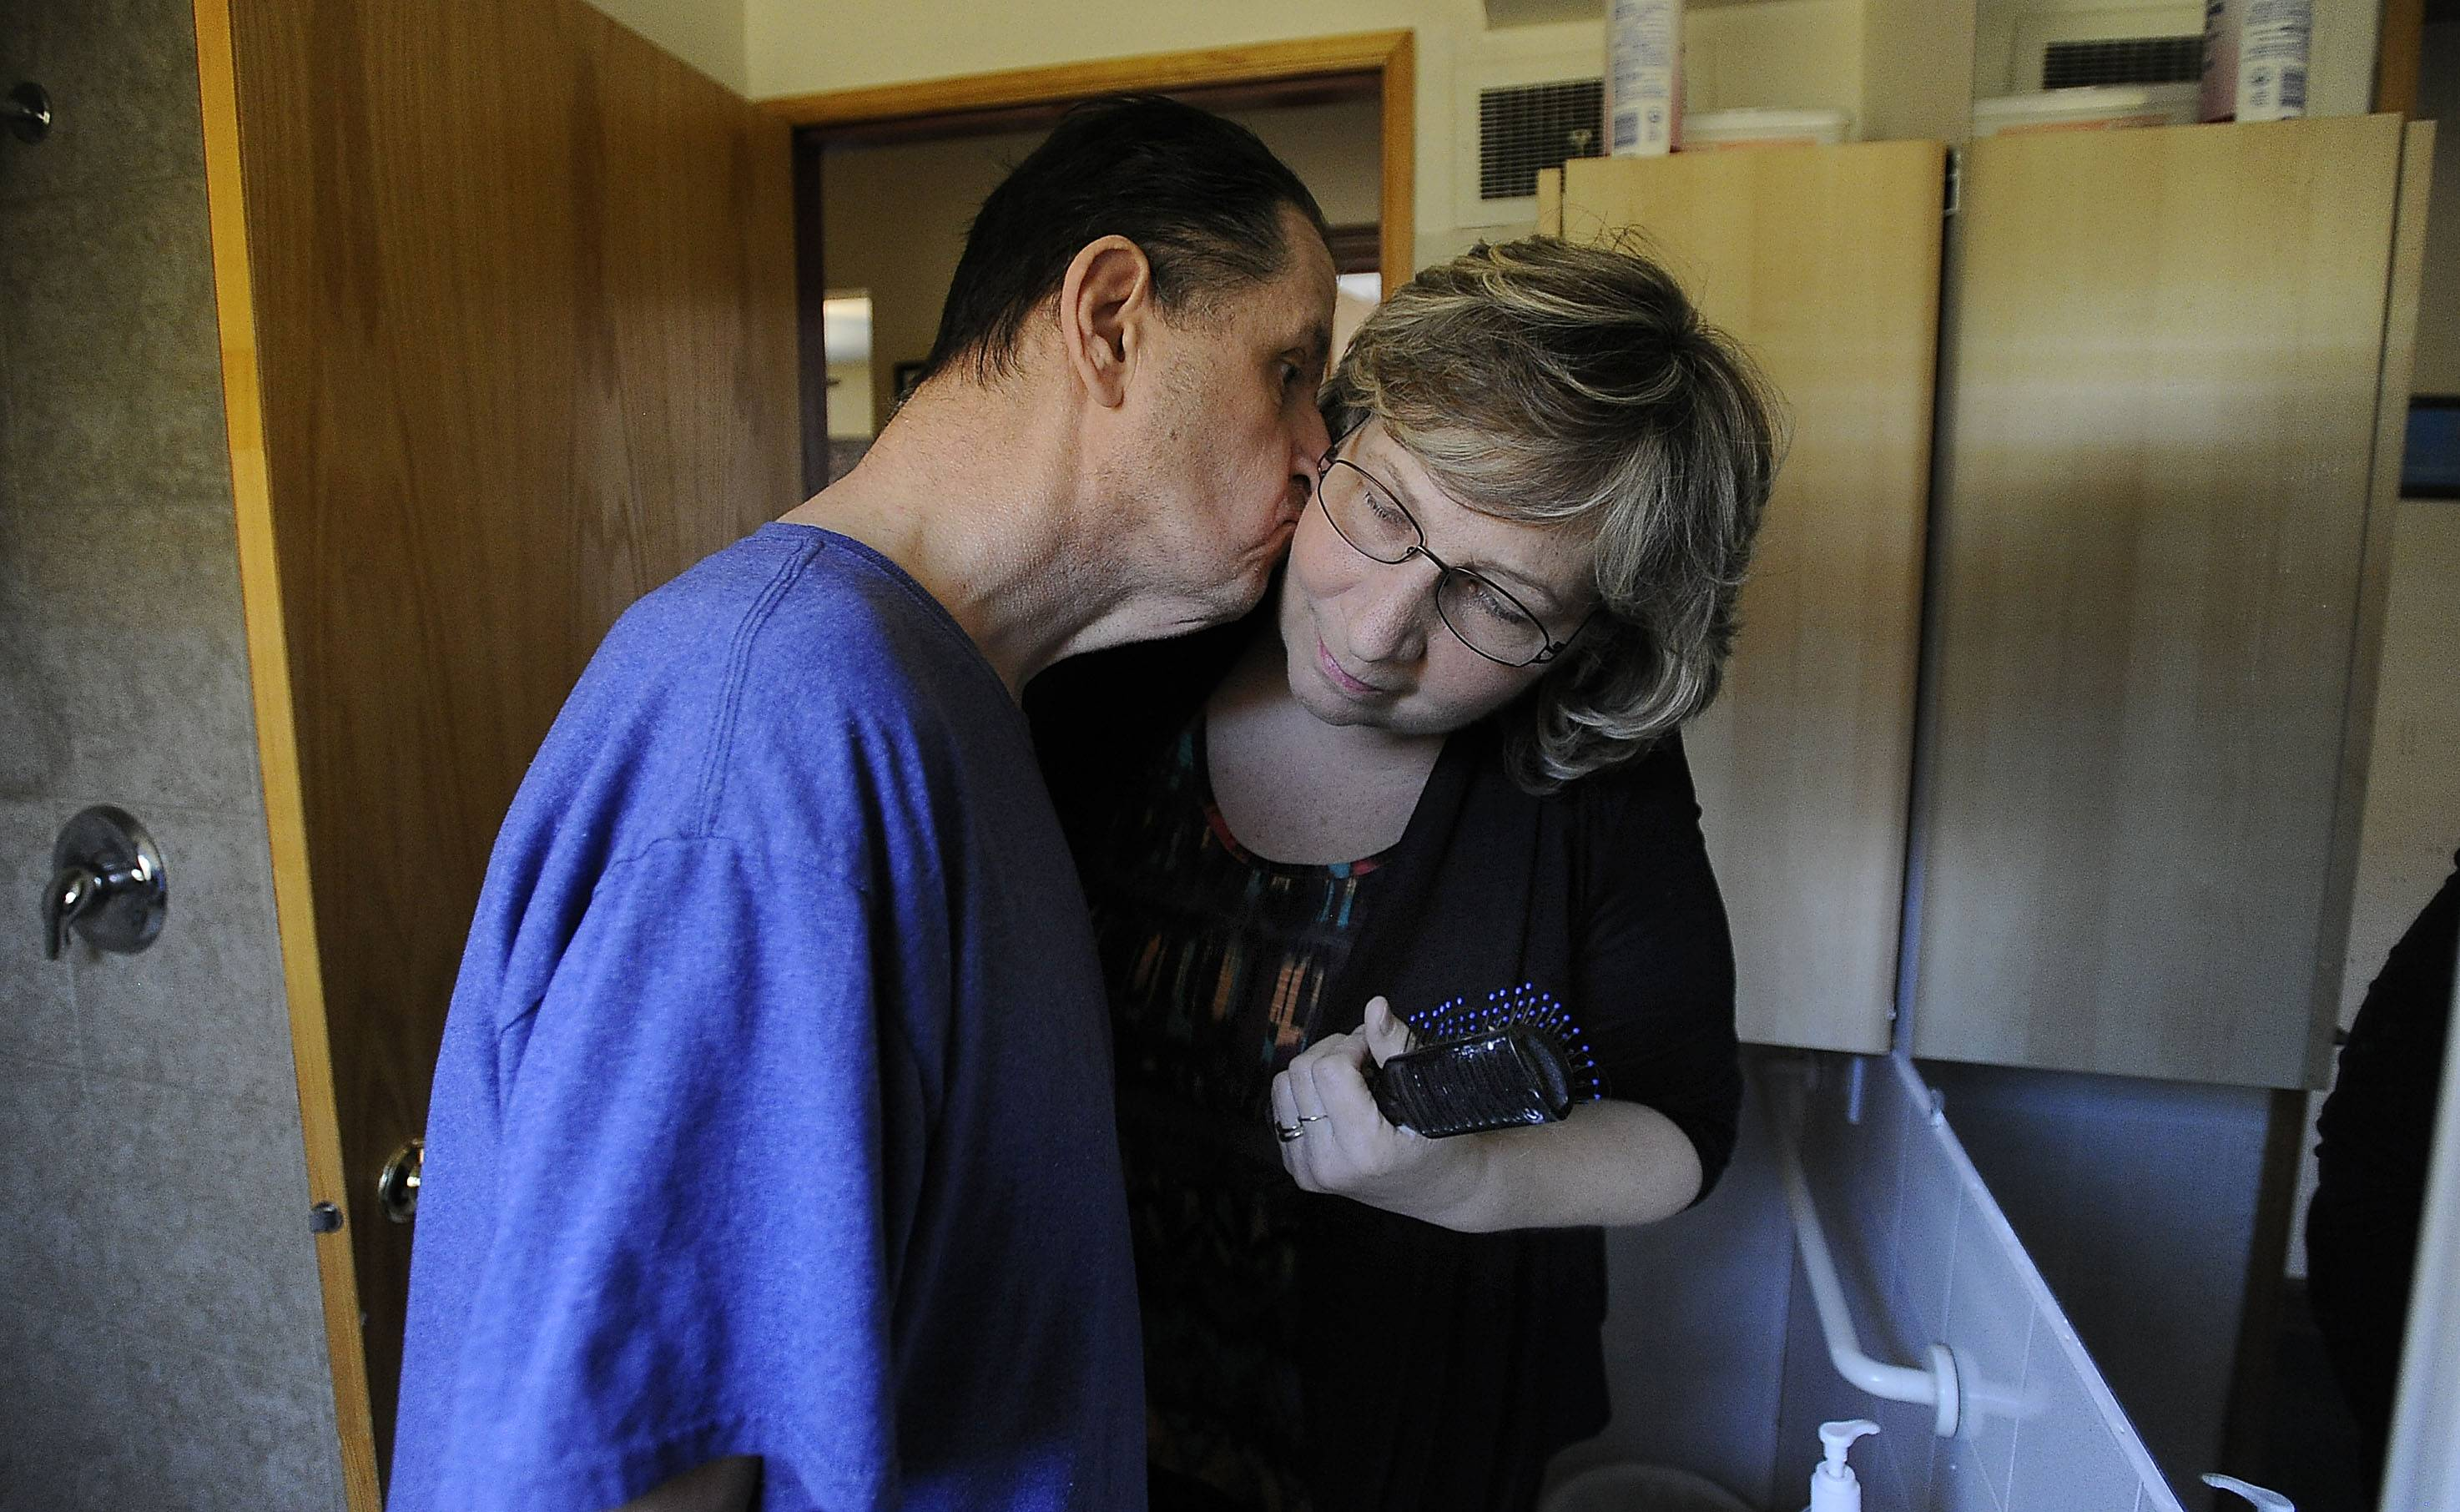 Billy Yacilla gives a kiss to caregiver Neoma Spencer of Hoffman Estates after she combed his hair at Cambridge House.